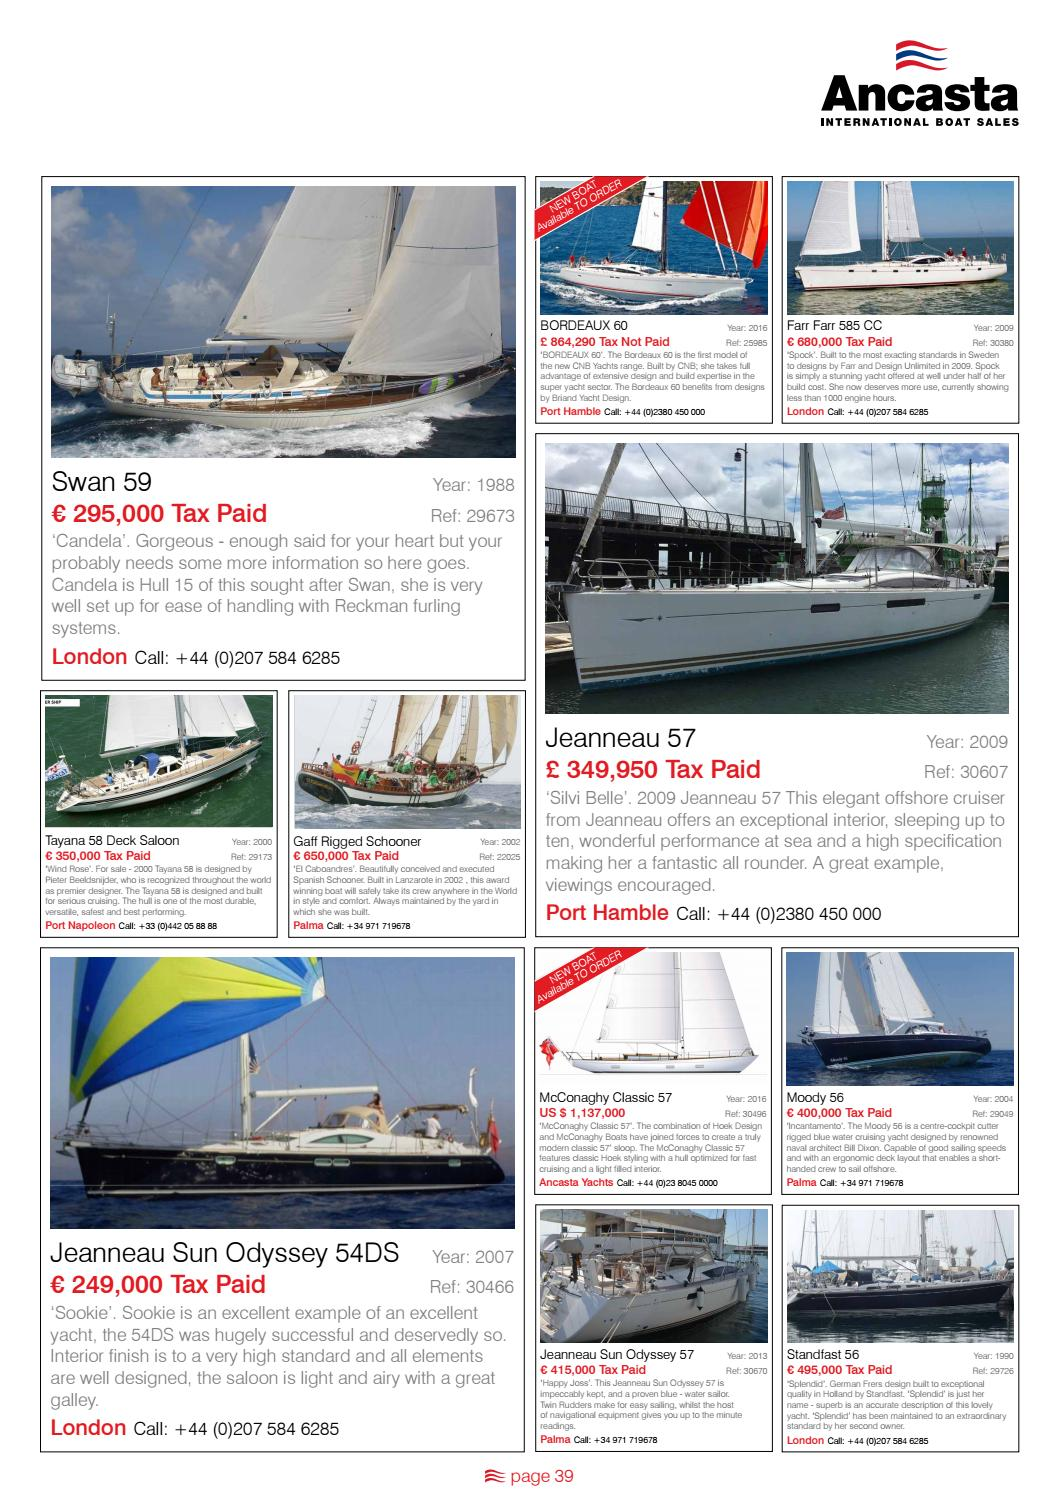 16 Autumn Ancasta Collection By Ancasta International Boat Sales Issuu